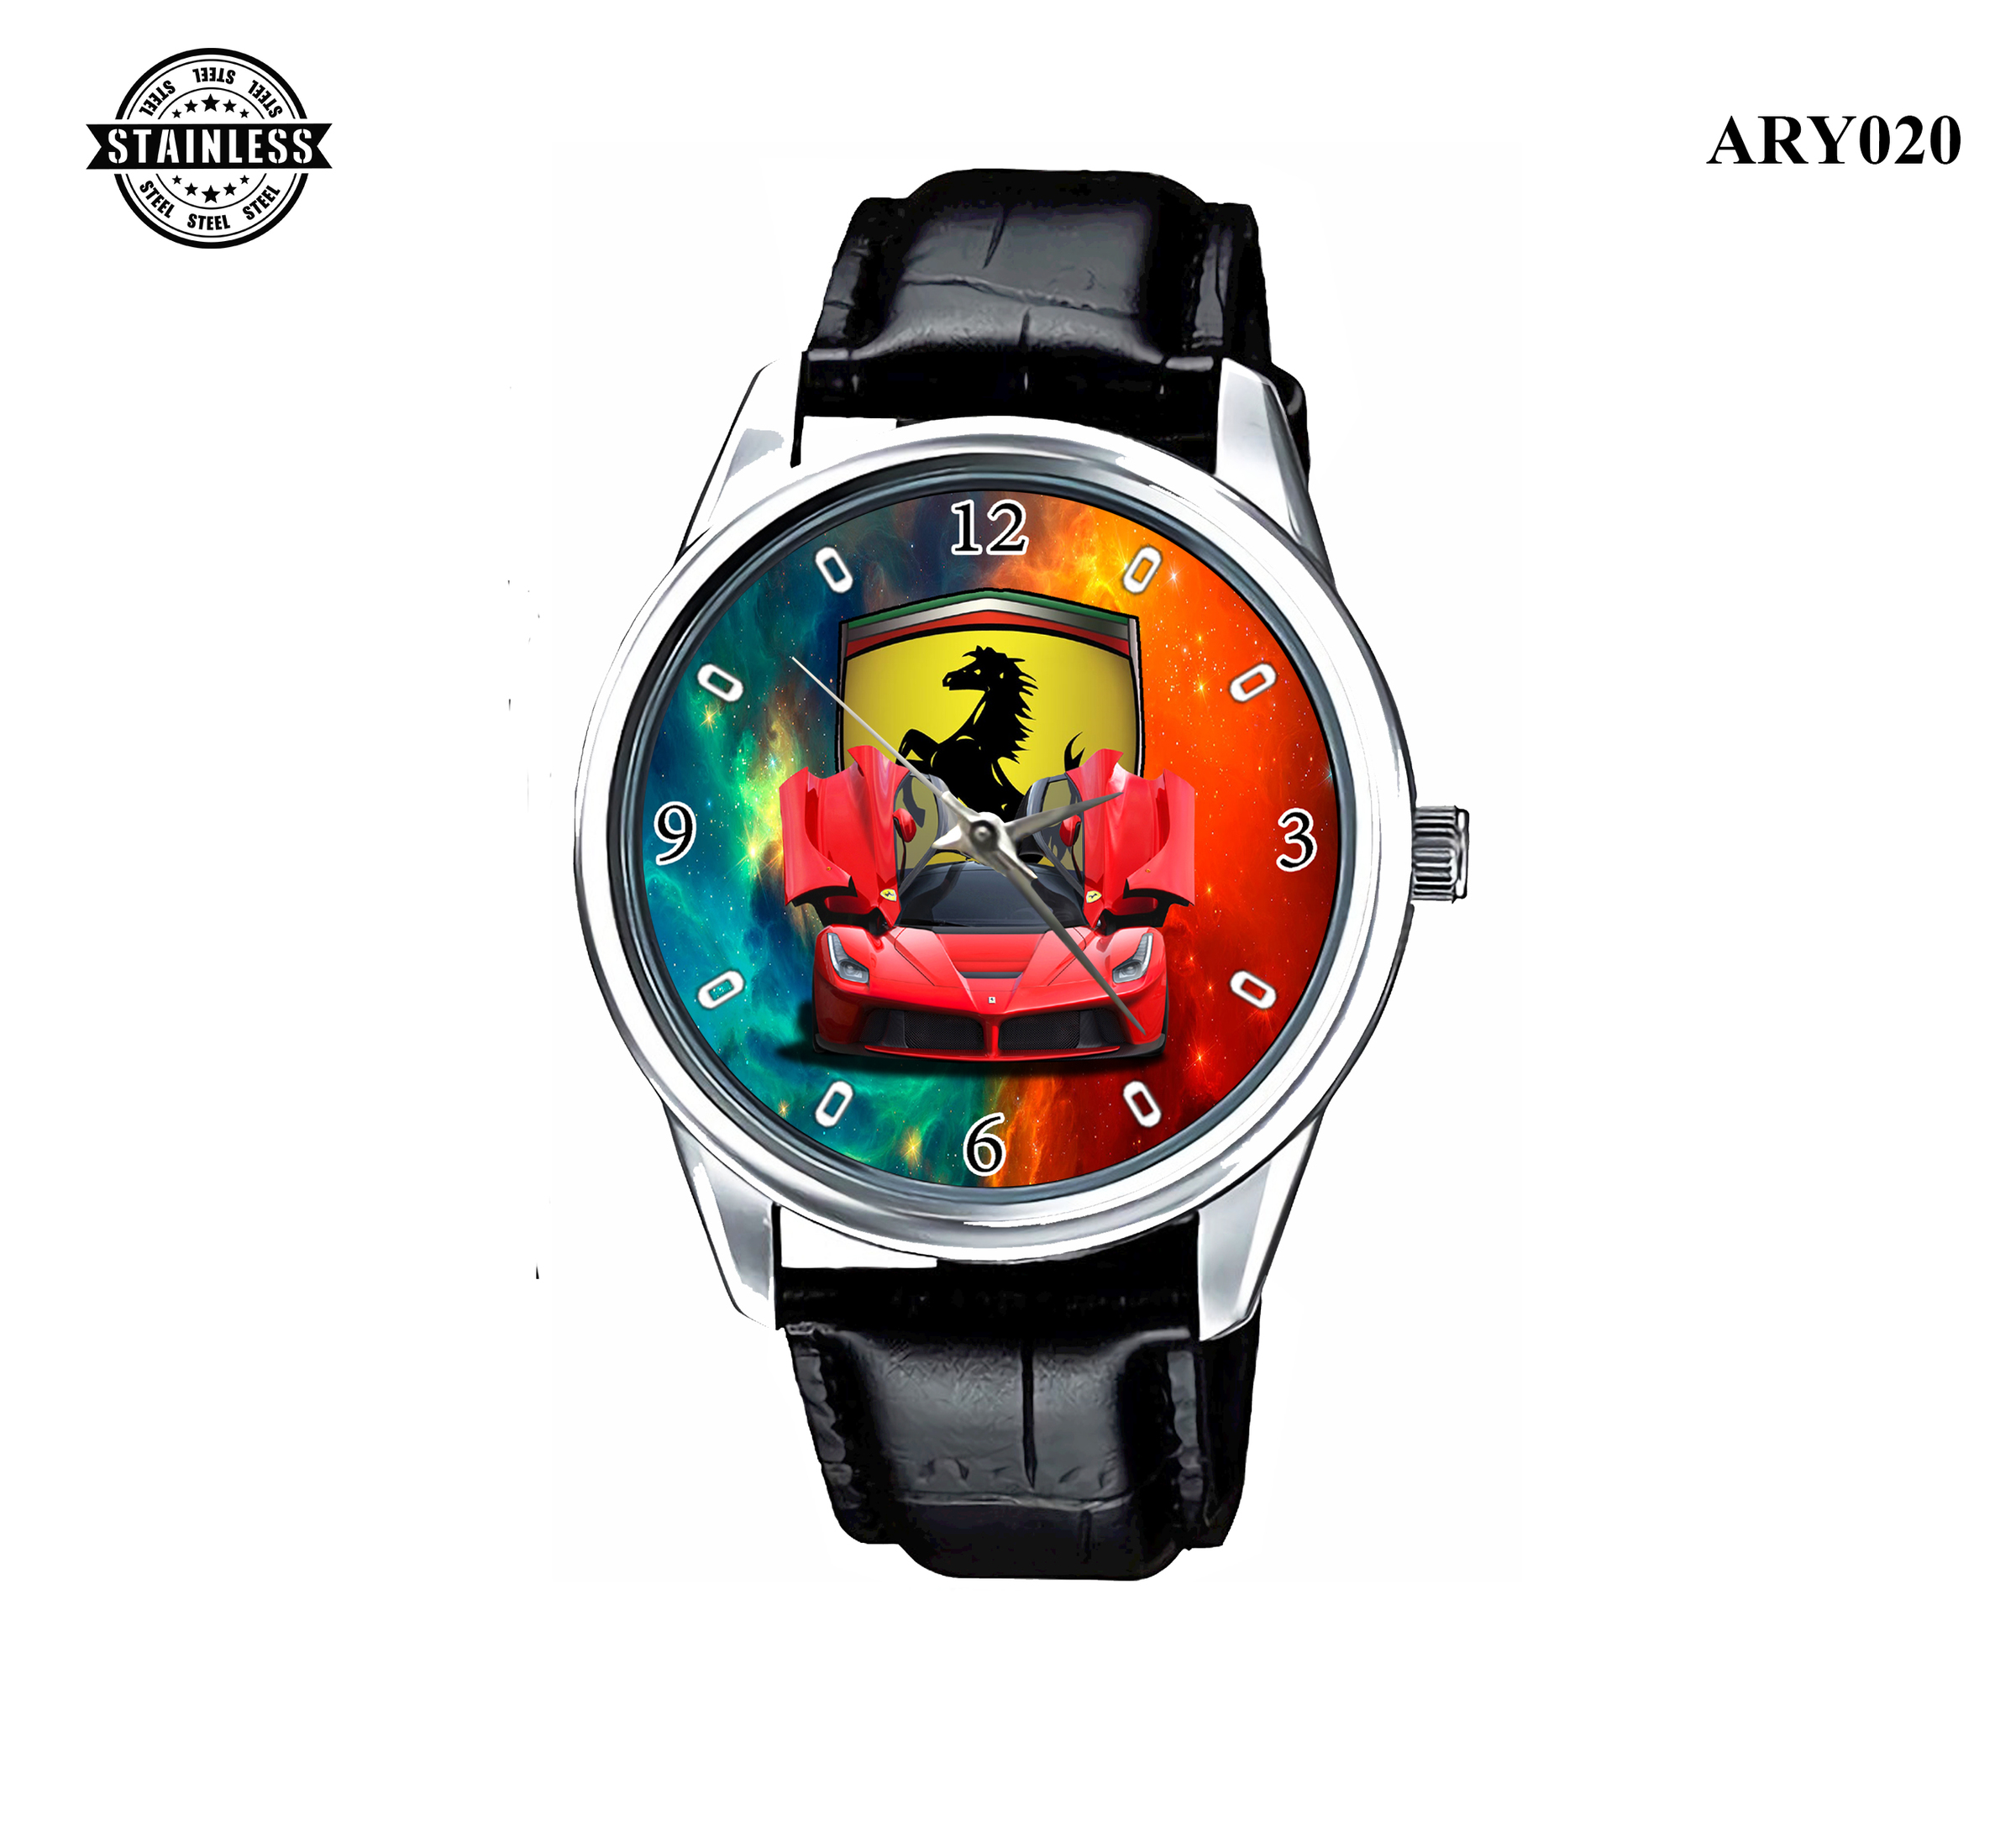 ARY020_Rare Reloj!!Ferrari Men Car_ Sport Metal Waches 3.jpg